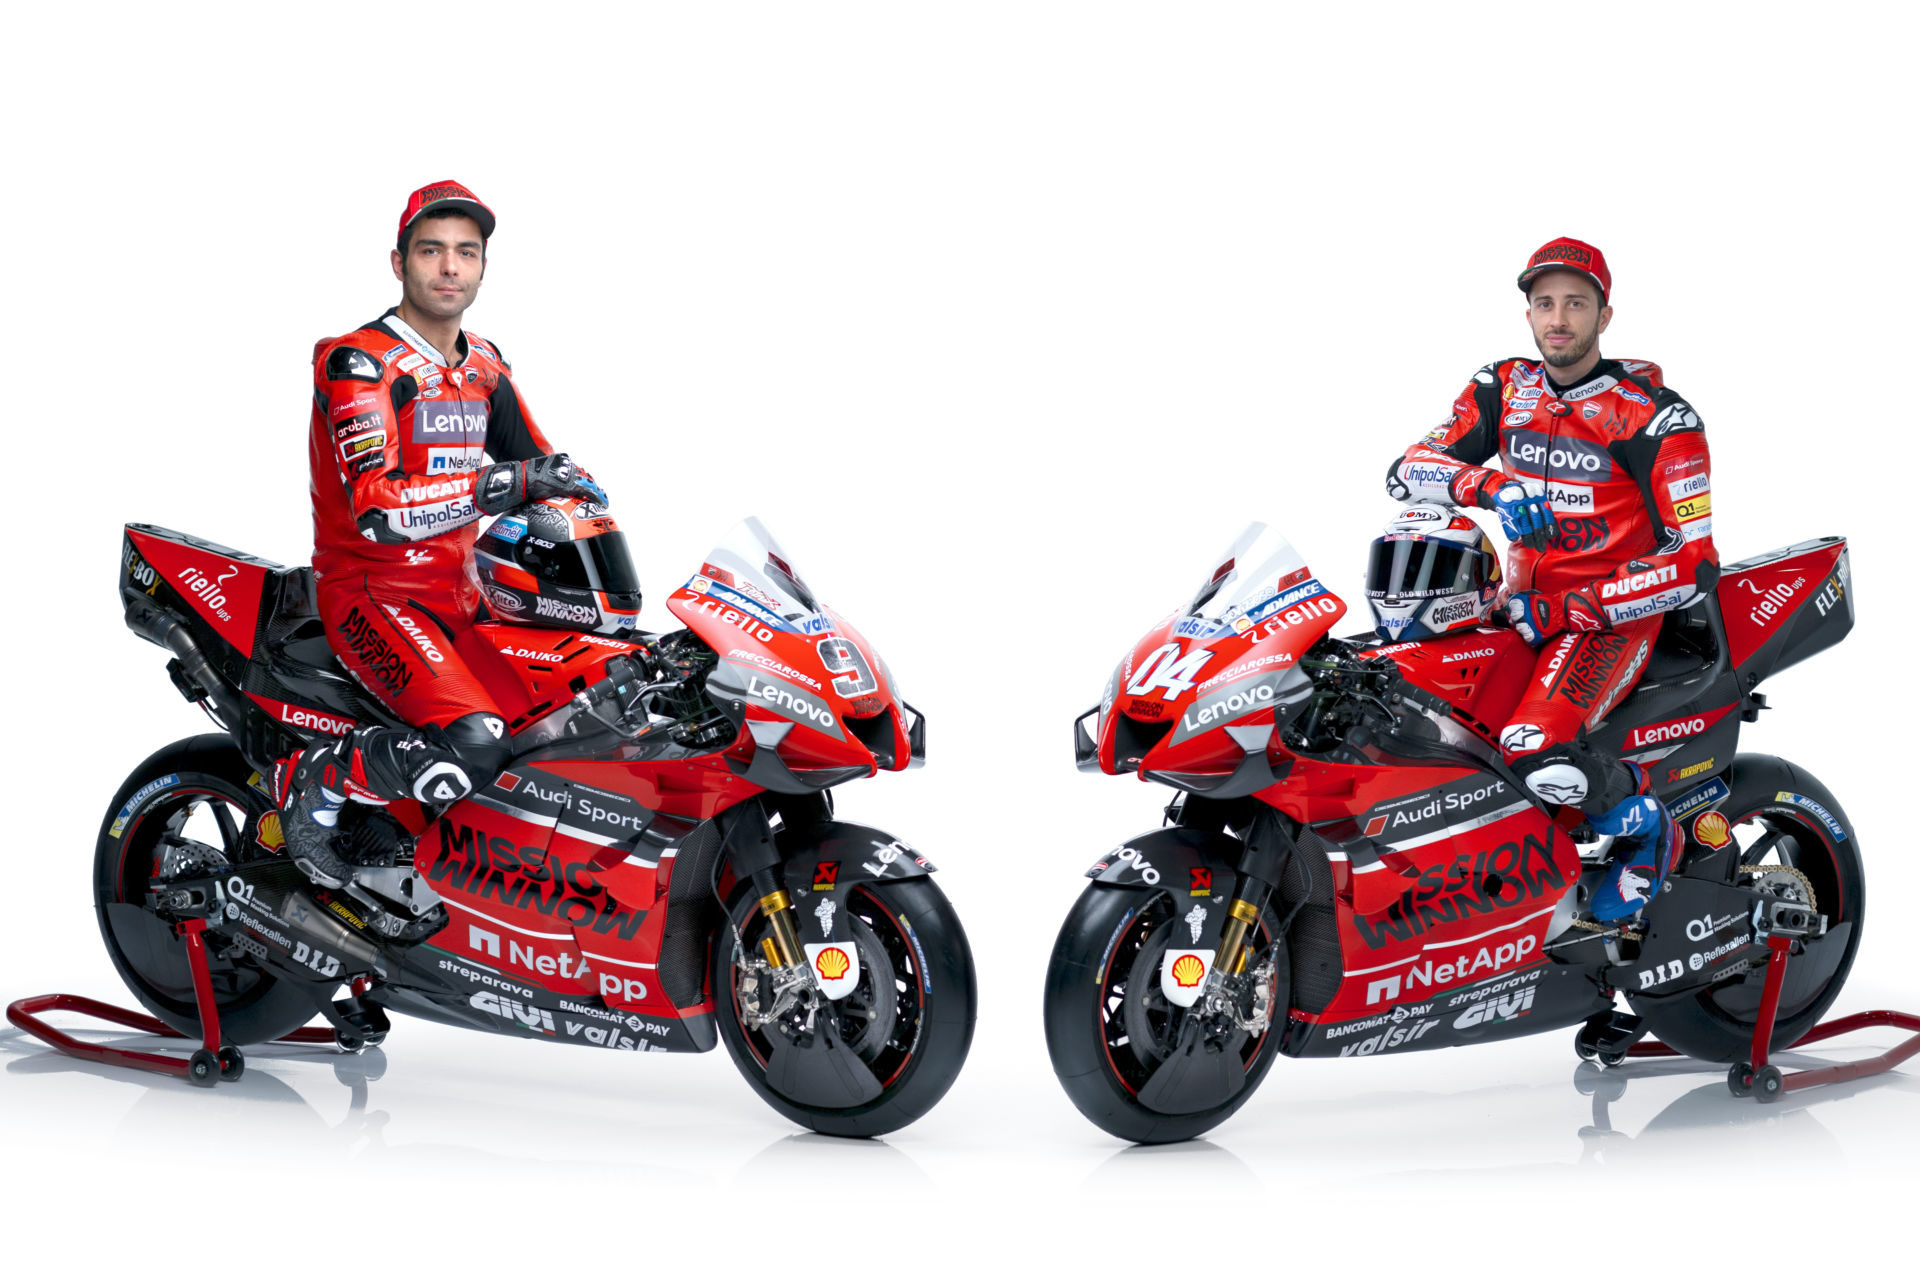 Danilo Petrucci (left) and Andrea Dovizioso (right) on their 2020 Mission Winnow Ducati Desmosedici GP20 MotoGP racebikes. Photo courtesy of Ducati.